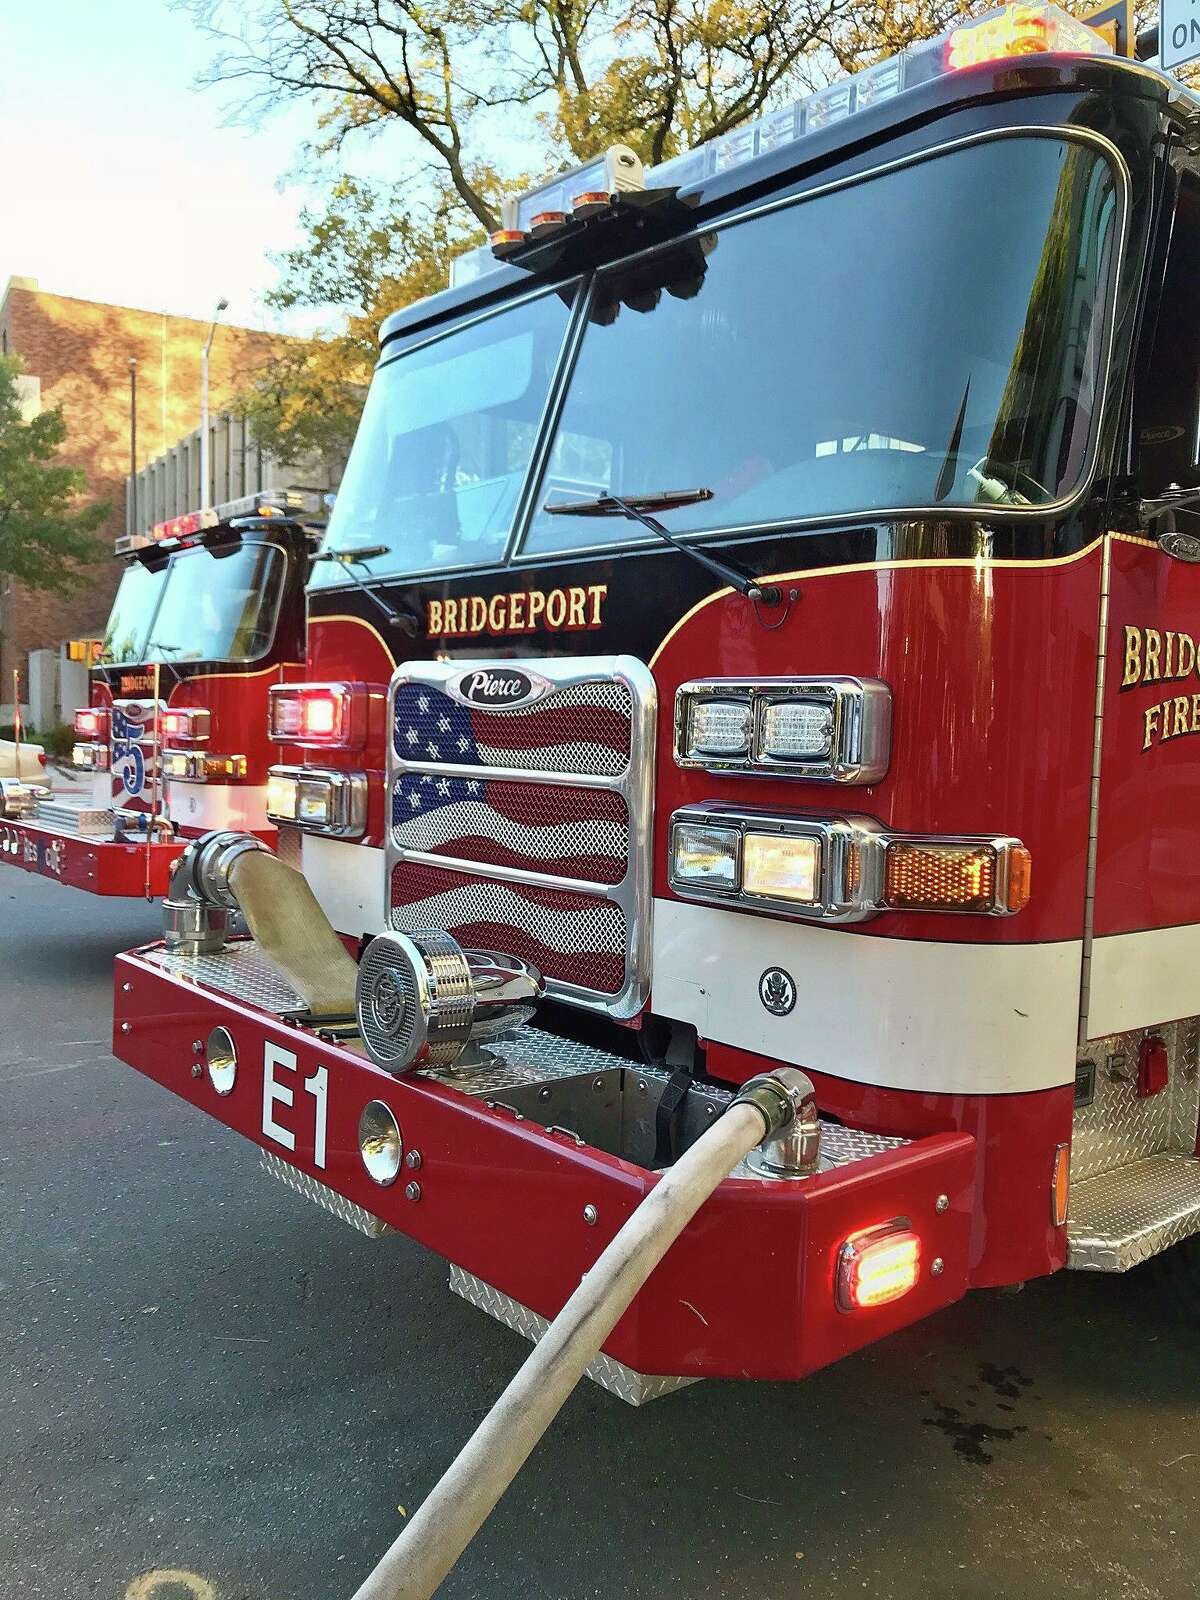 First responders were sent to Fairfield Avenue in Bridgeport, Conn., on Monday, Oct. 4, 2021, around 12:30 p.m. for a reported electrocution, according to a city official.